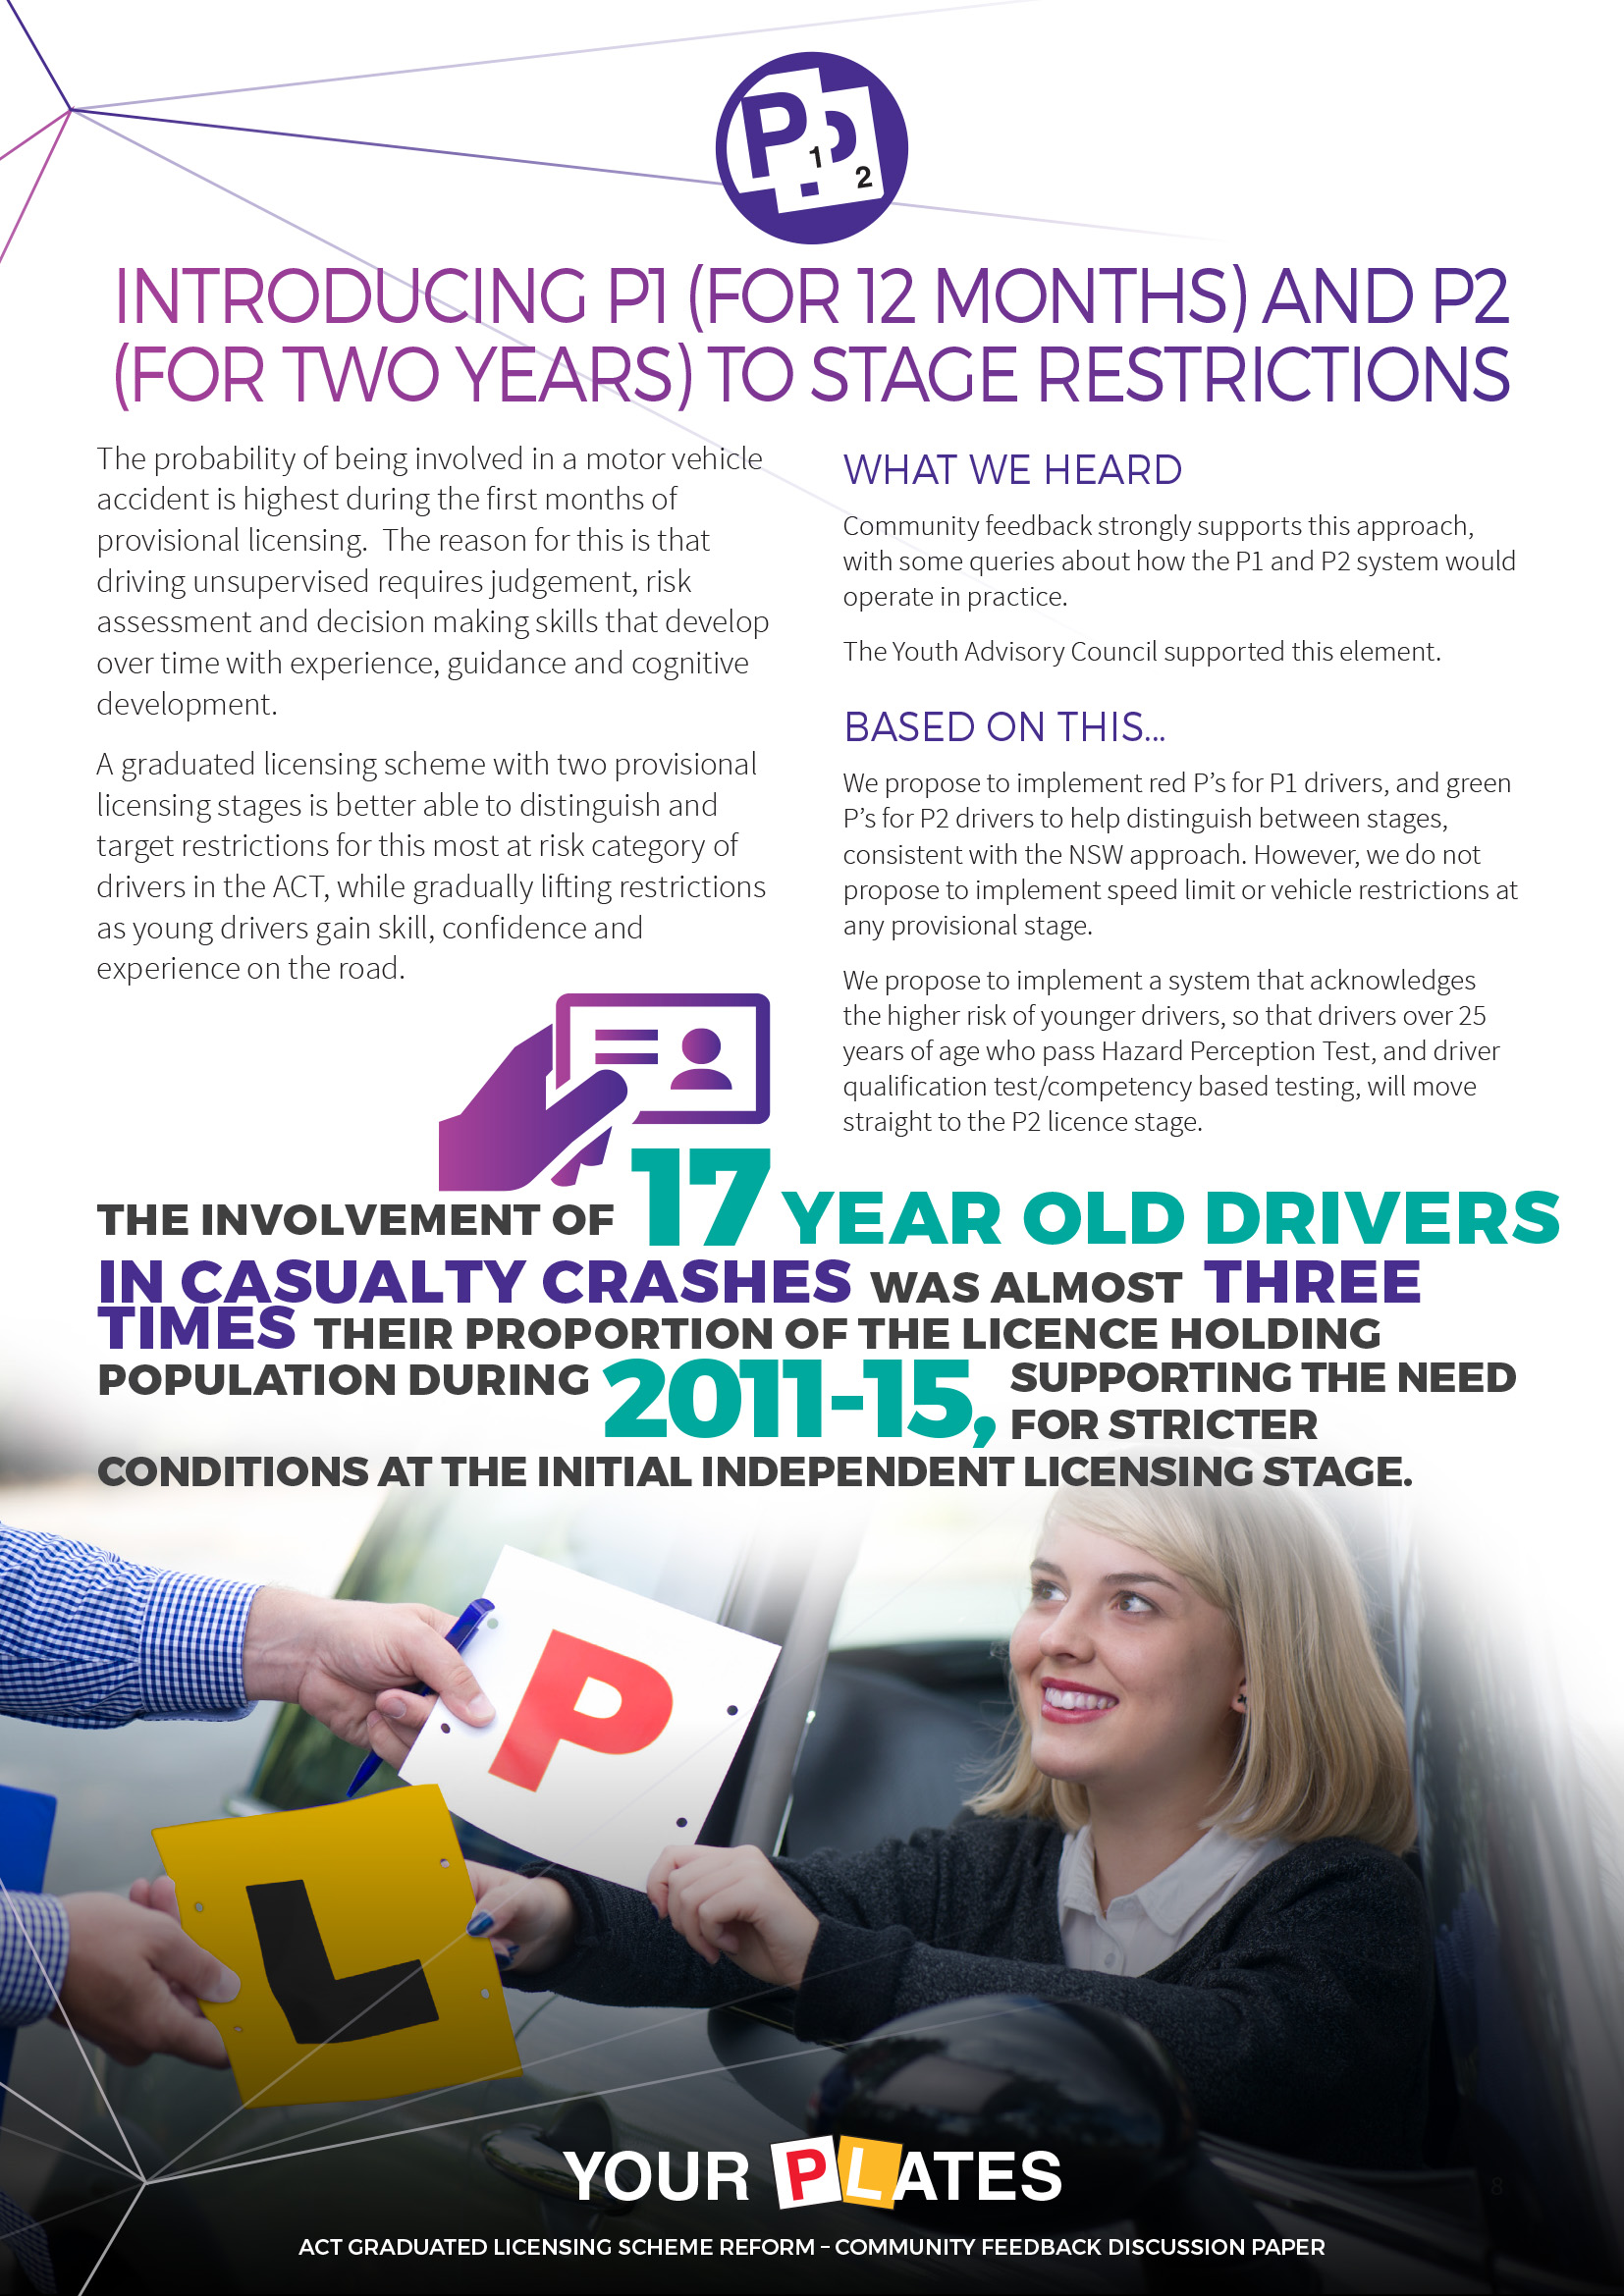 Introducing P1 (for 12 months) and P2 (for two years) to stage restrictions